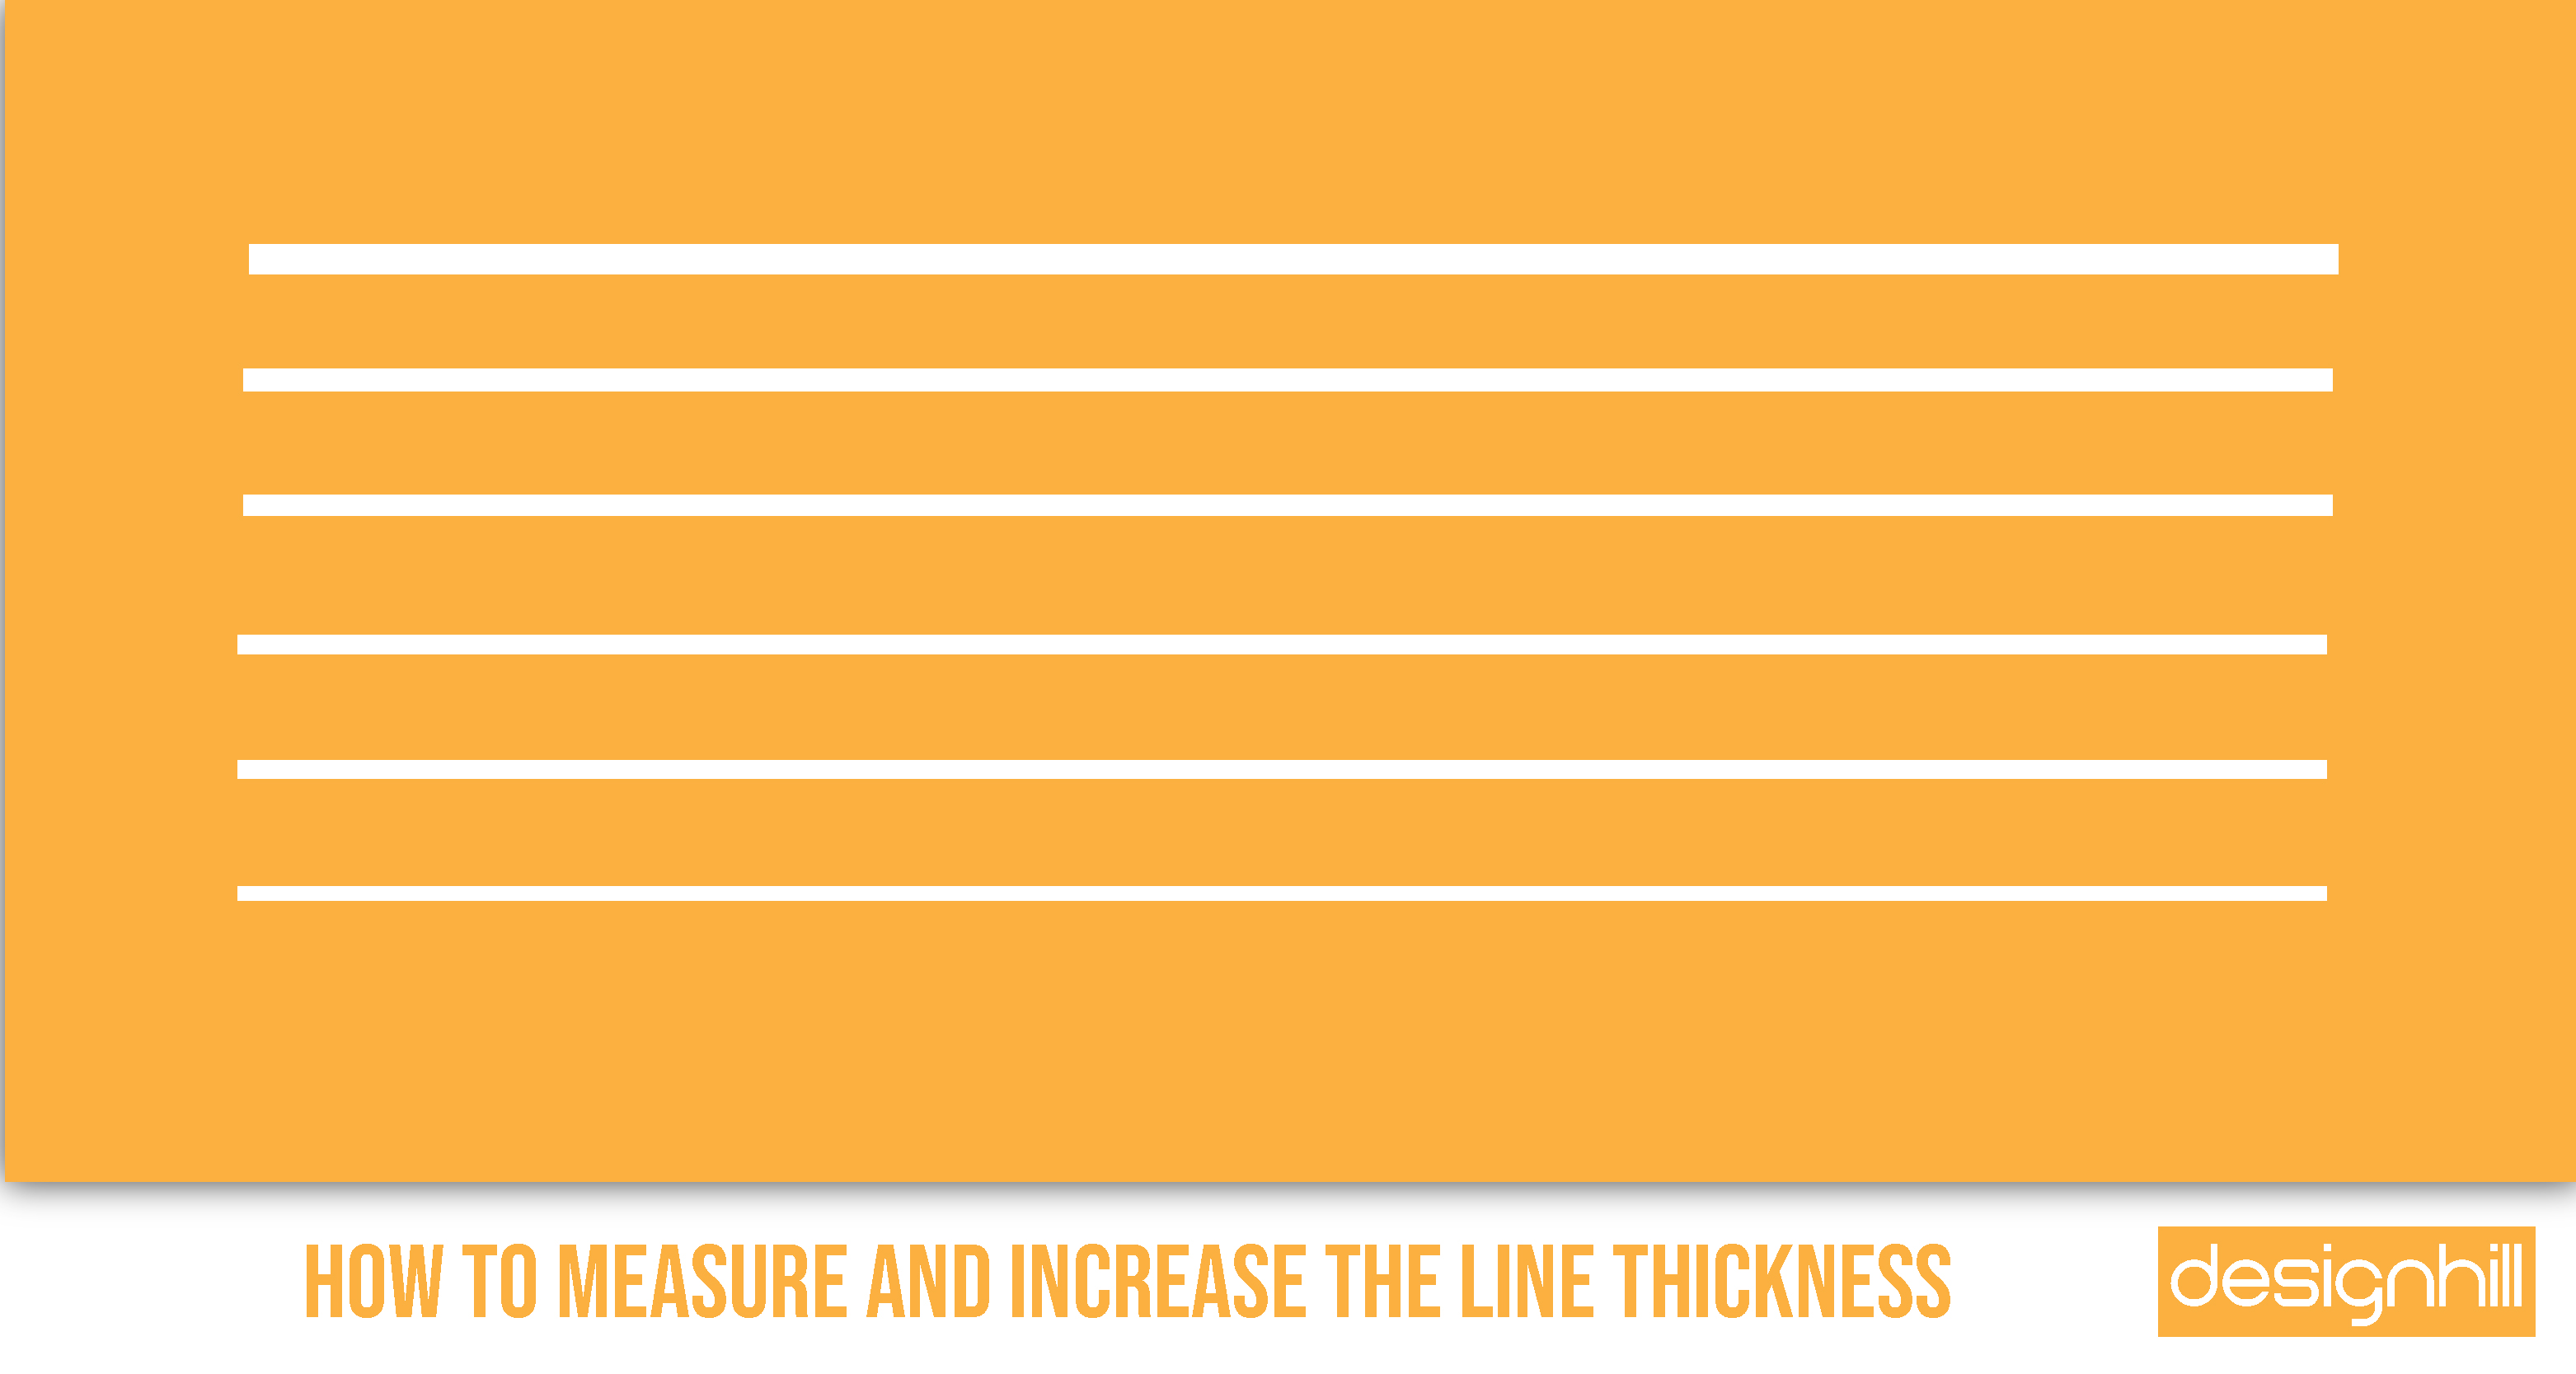 How To Measure And Increase The Line Thickness